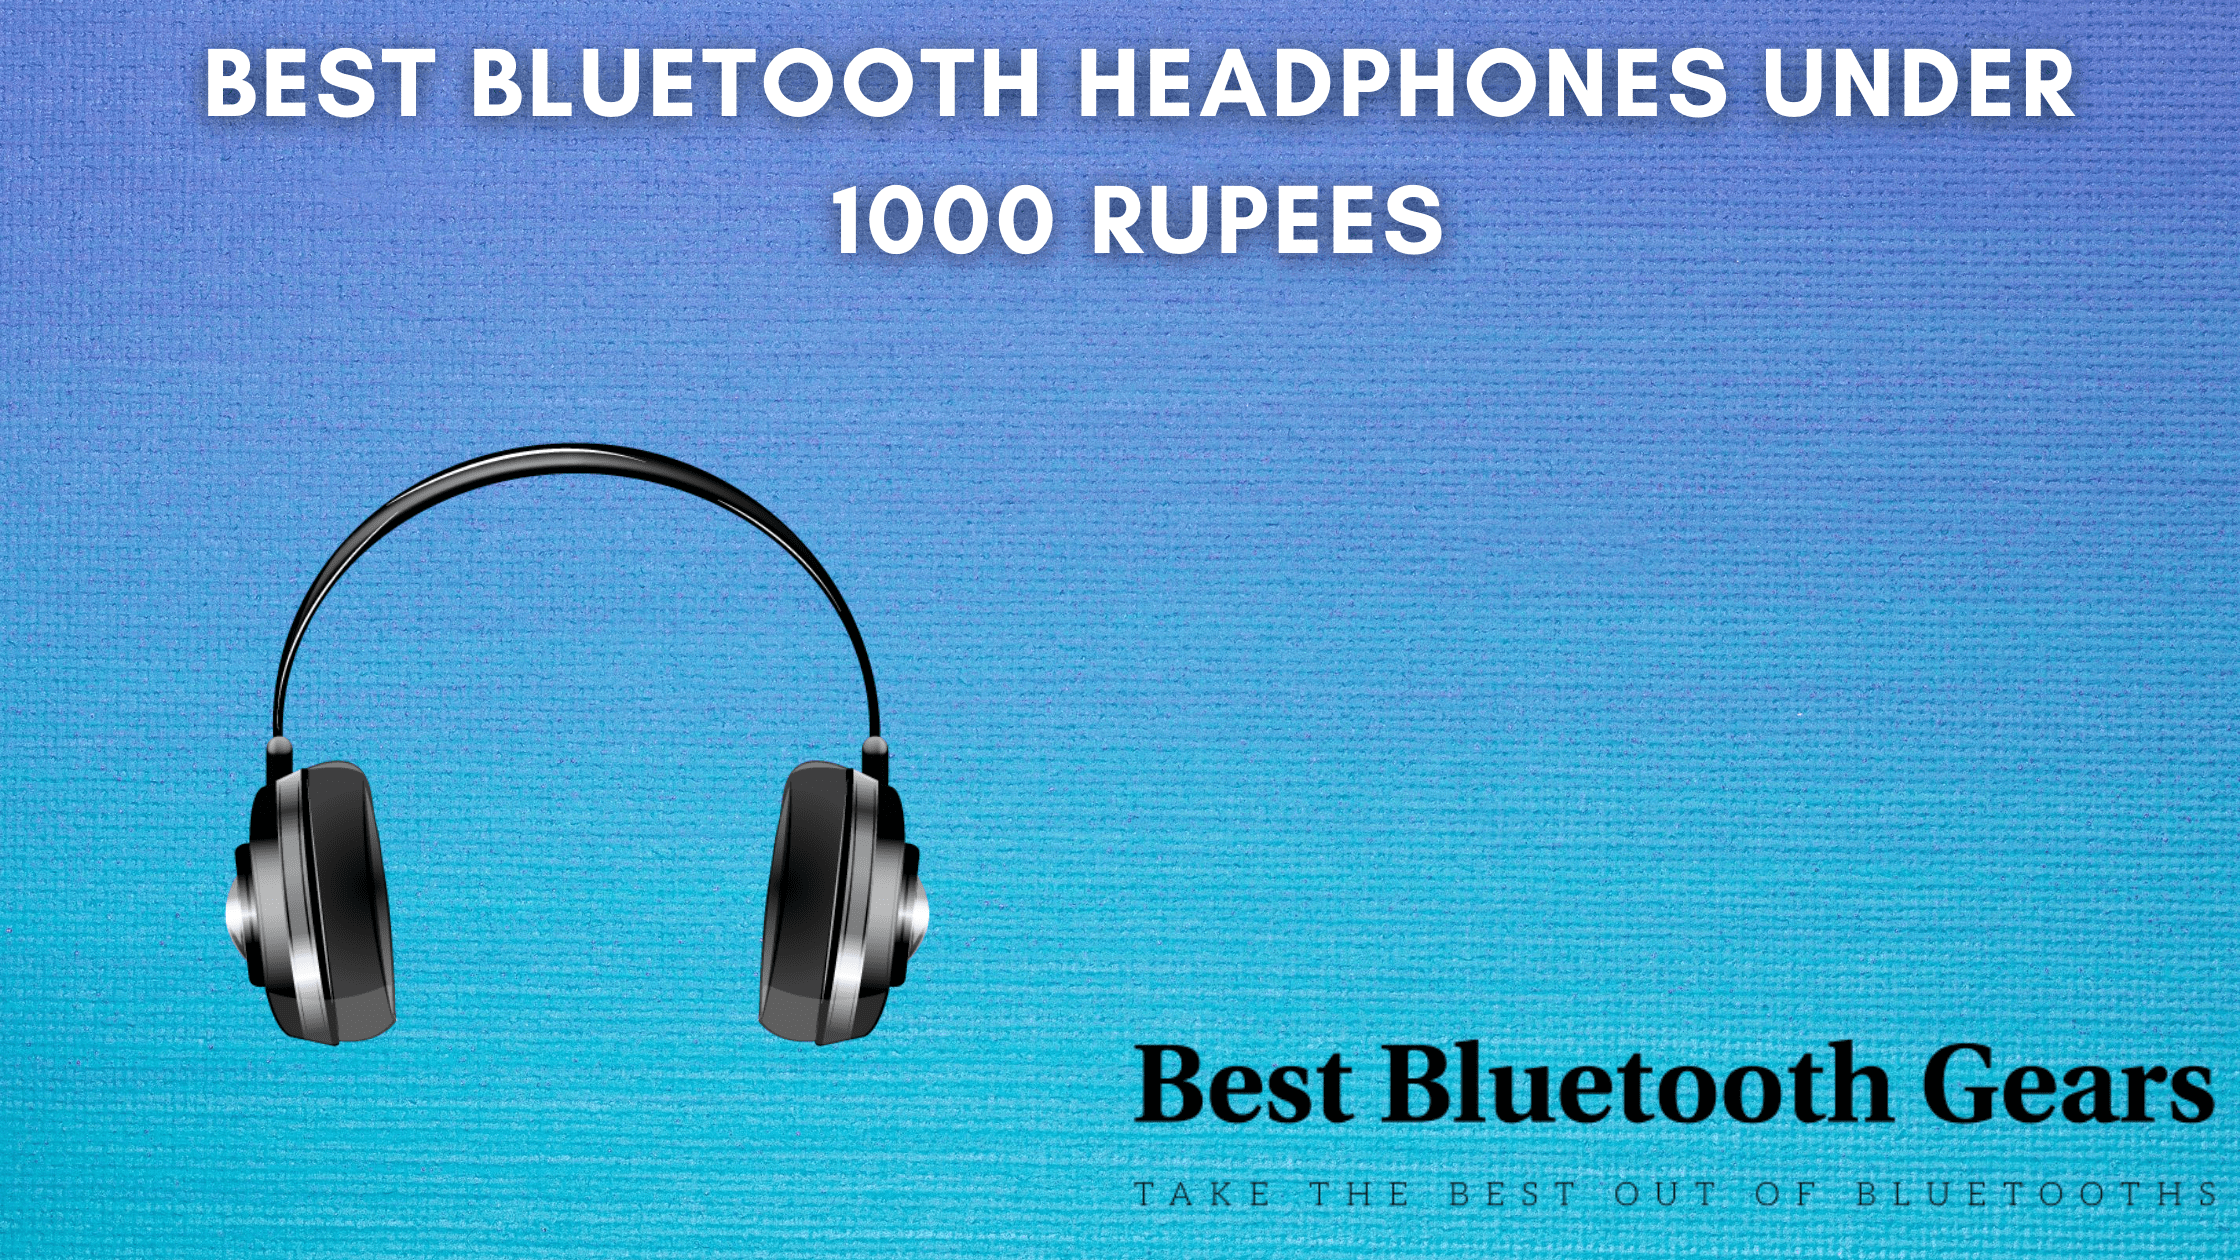 10 Best Bluetooth Headphones Under 1000 Rs In India 2020 Best Bluetooth Gears